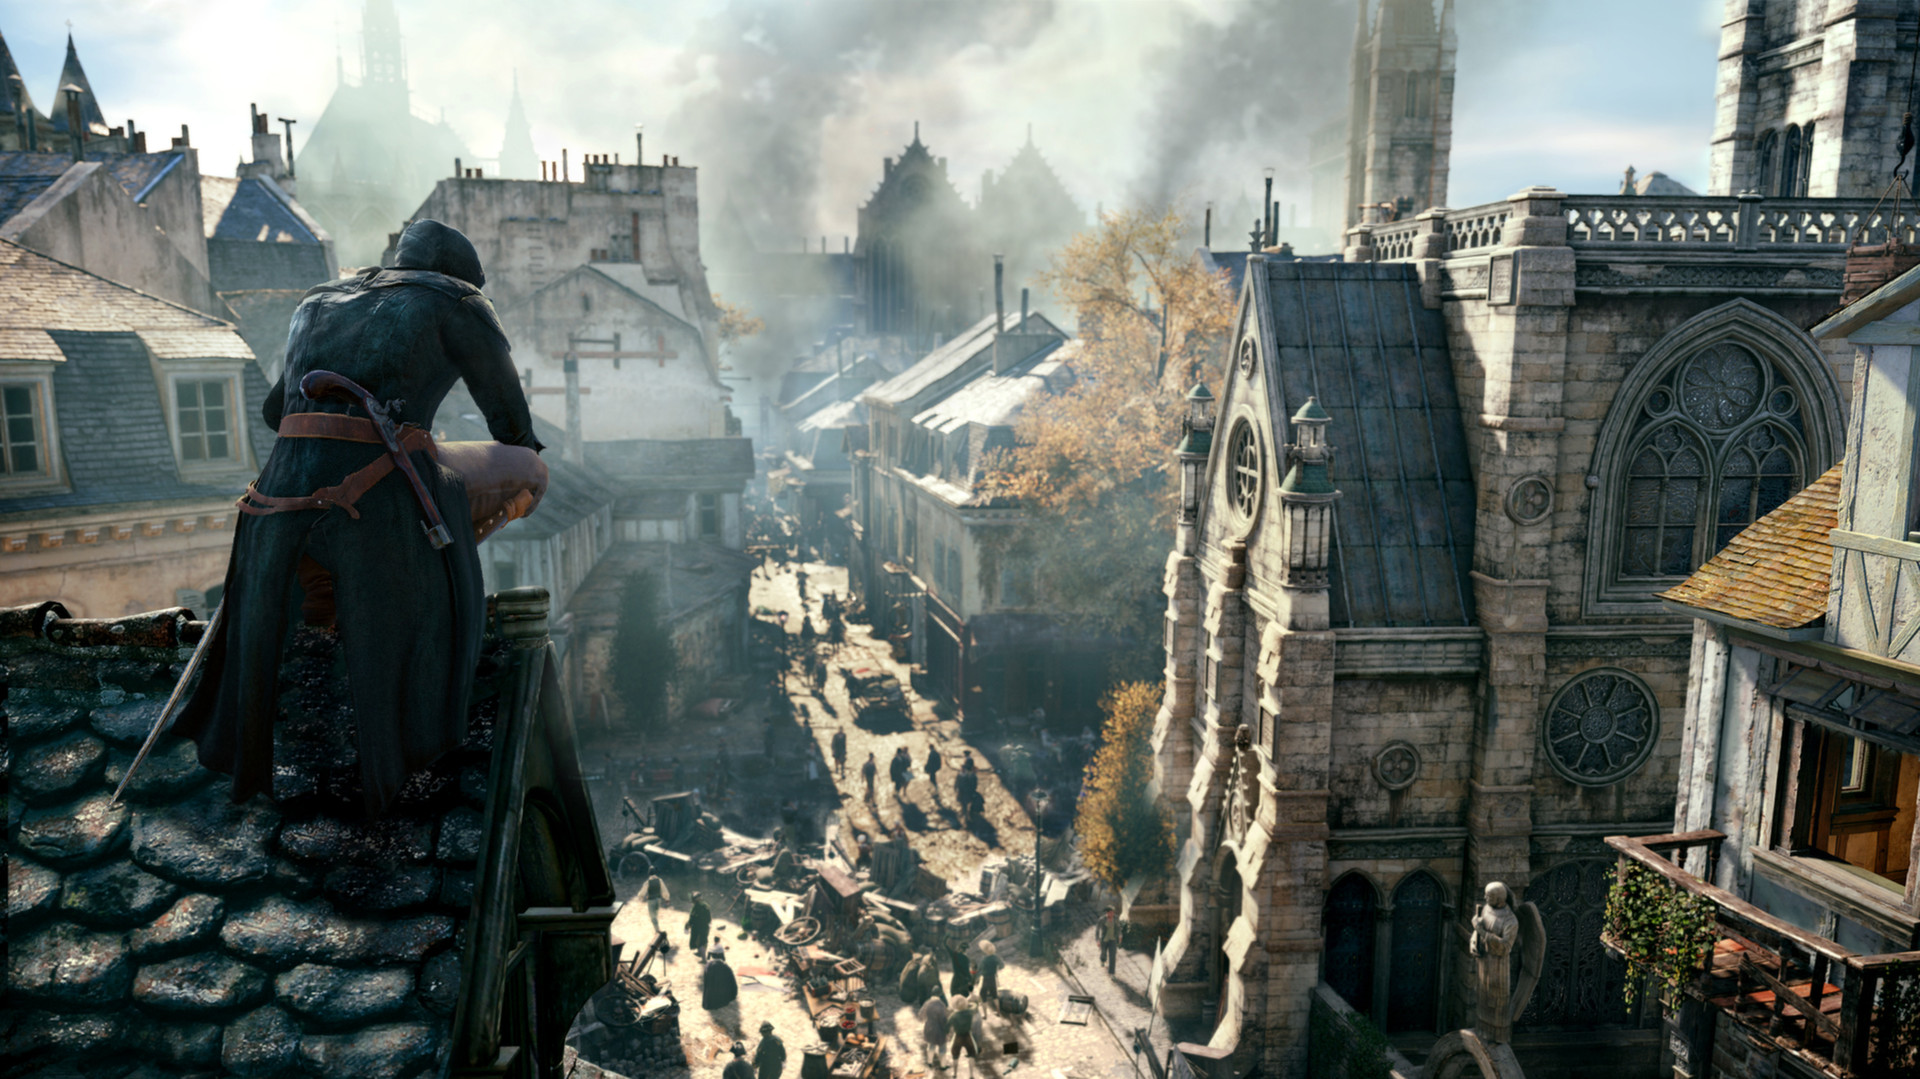 download assassin's creed unity complete edition singlelink iso cracked by reloaded 3dm gog cpy games release codex prophet hi2u multi languages free for pc 2017 gratis